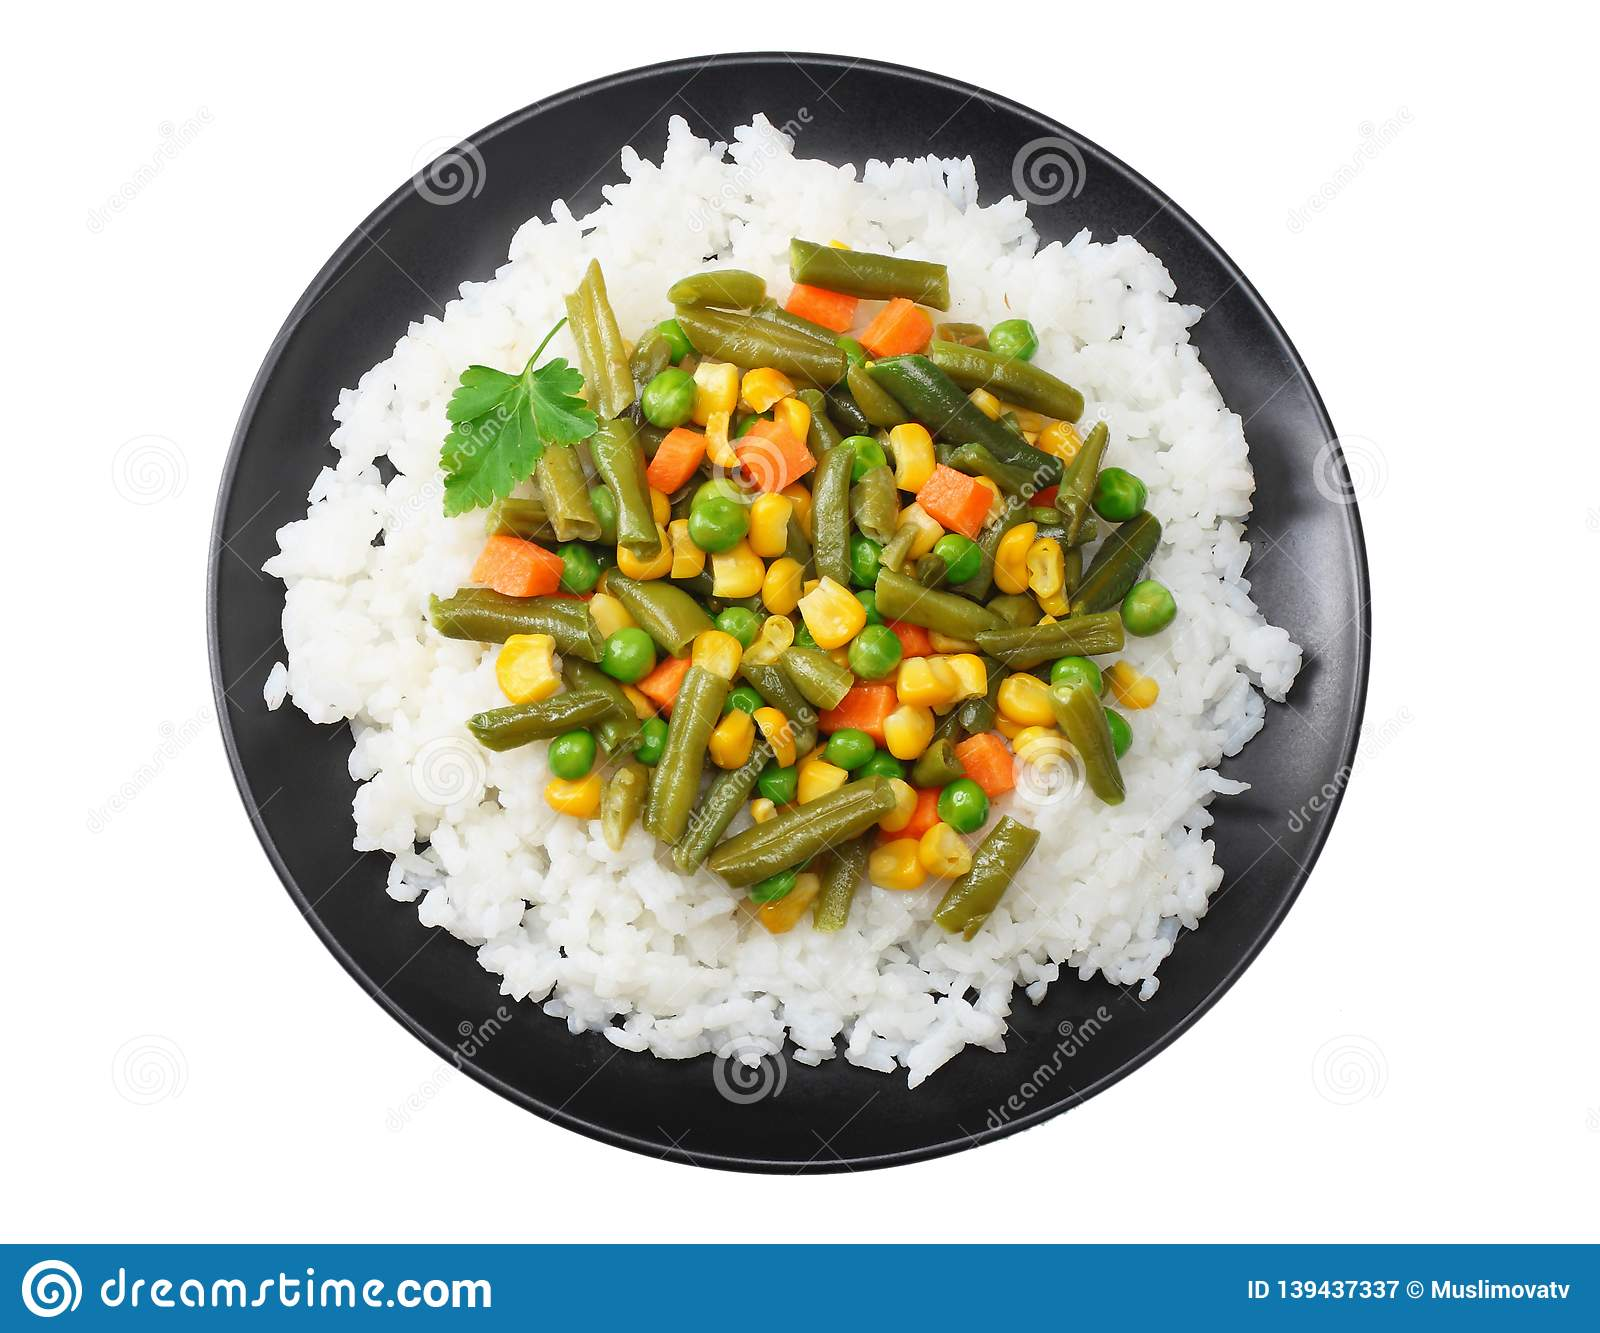 black plate with white rice, green peas, canned corn kernels, cut green beans isolated on white background. top view